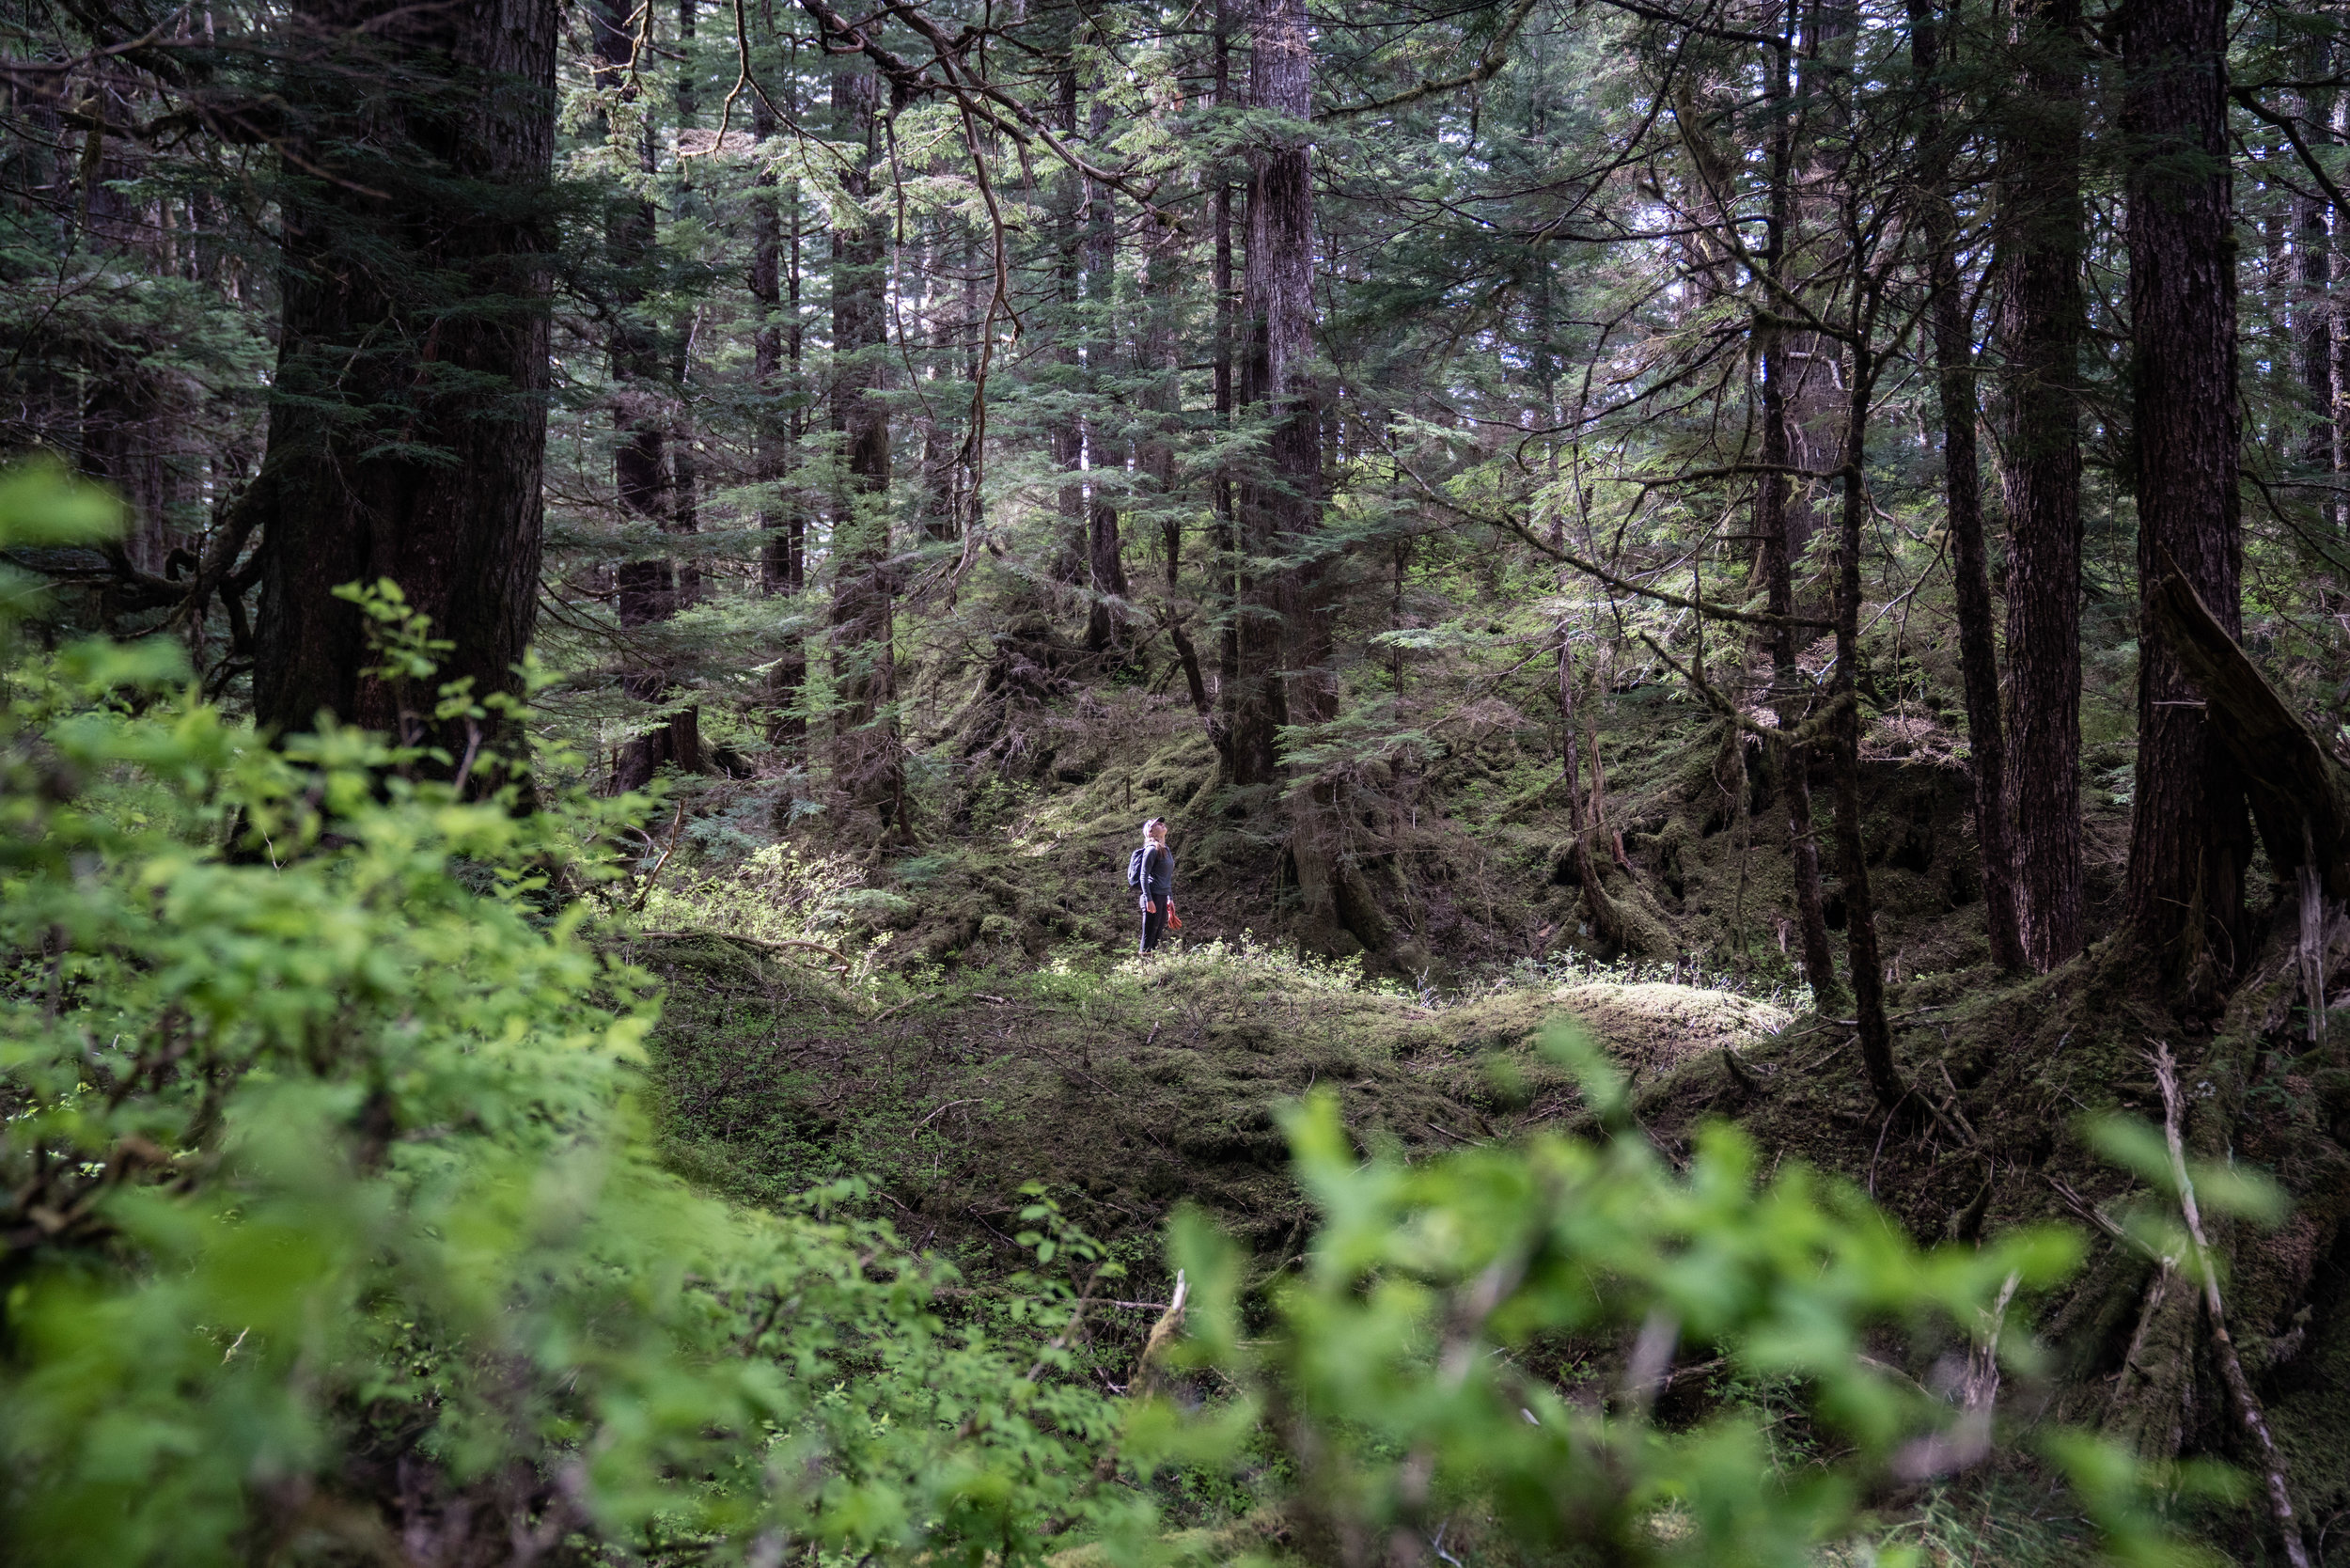 Mara in the midst of old-growth forest. Old-growth is characterized by many ages of trees, large and small, in an intricate and constantly evolving dance for light. Photo: Colin Arisman.